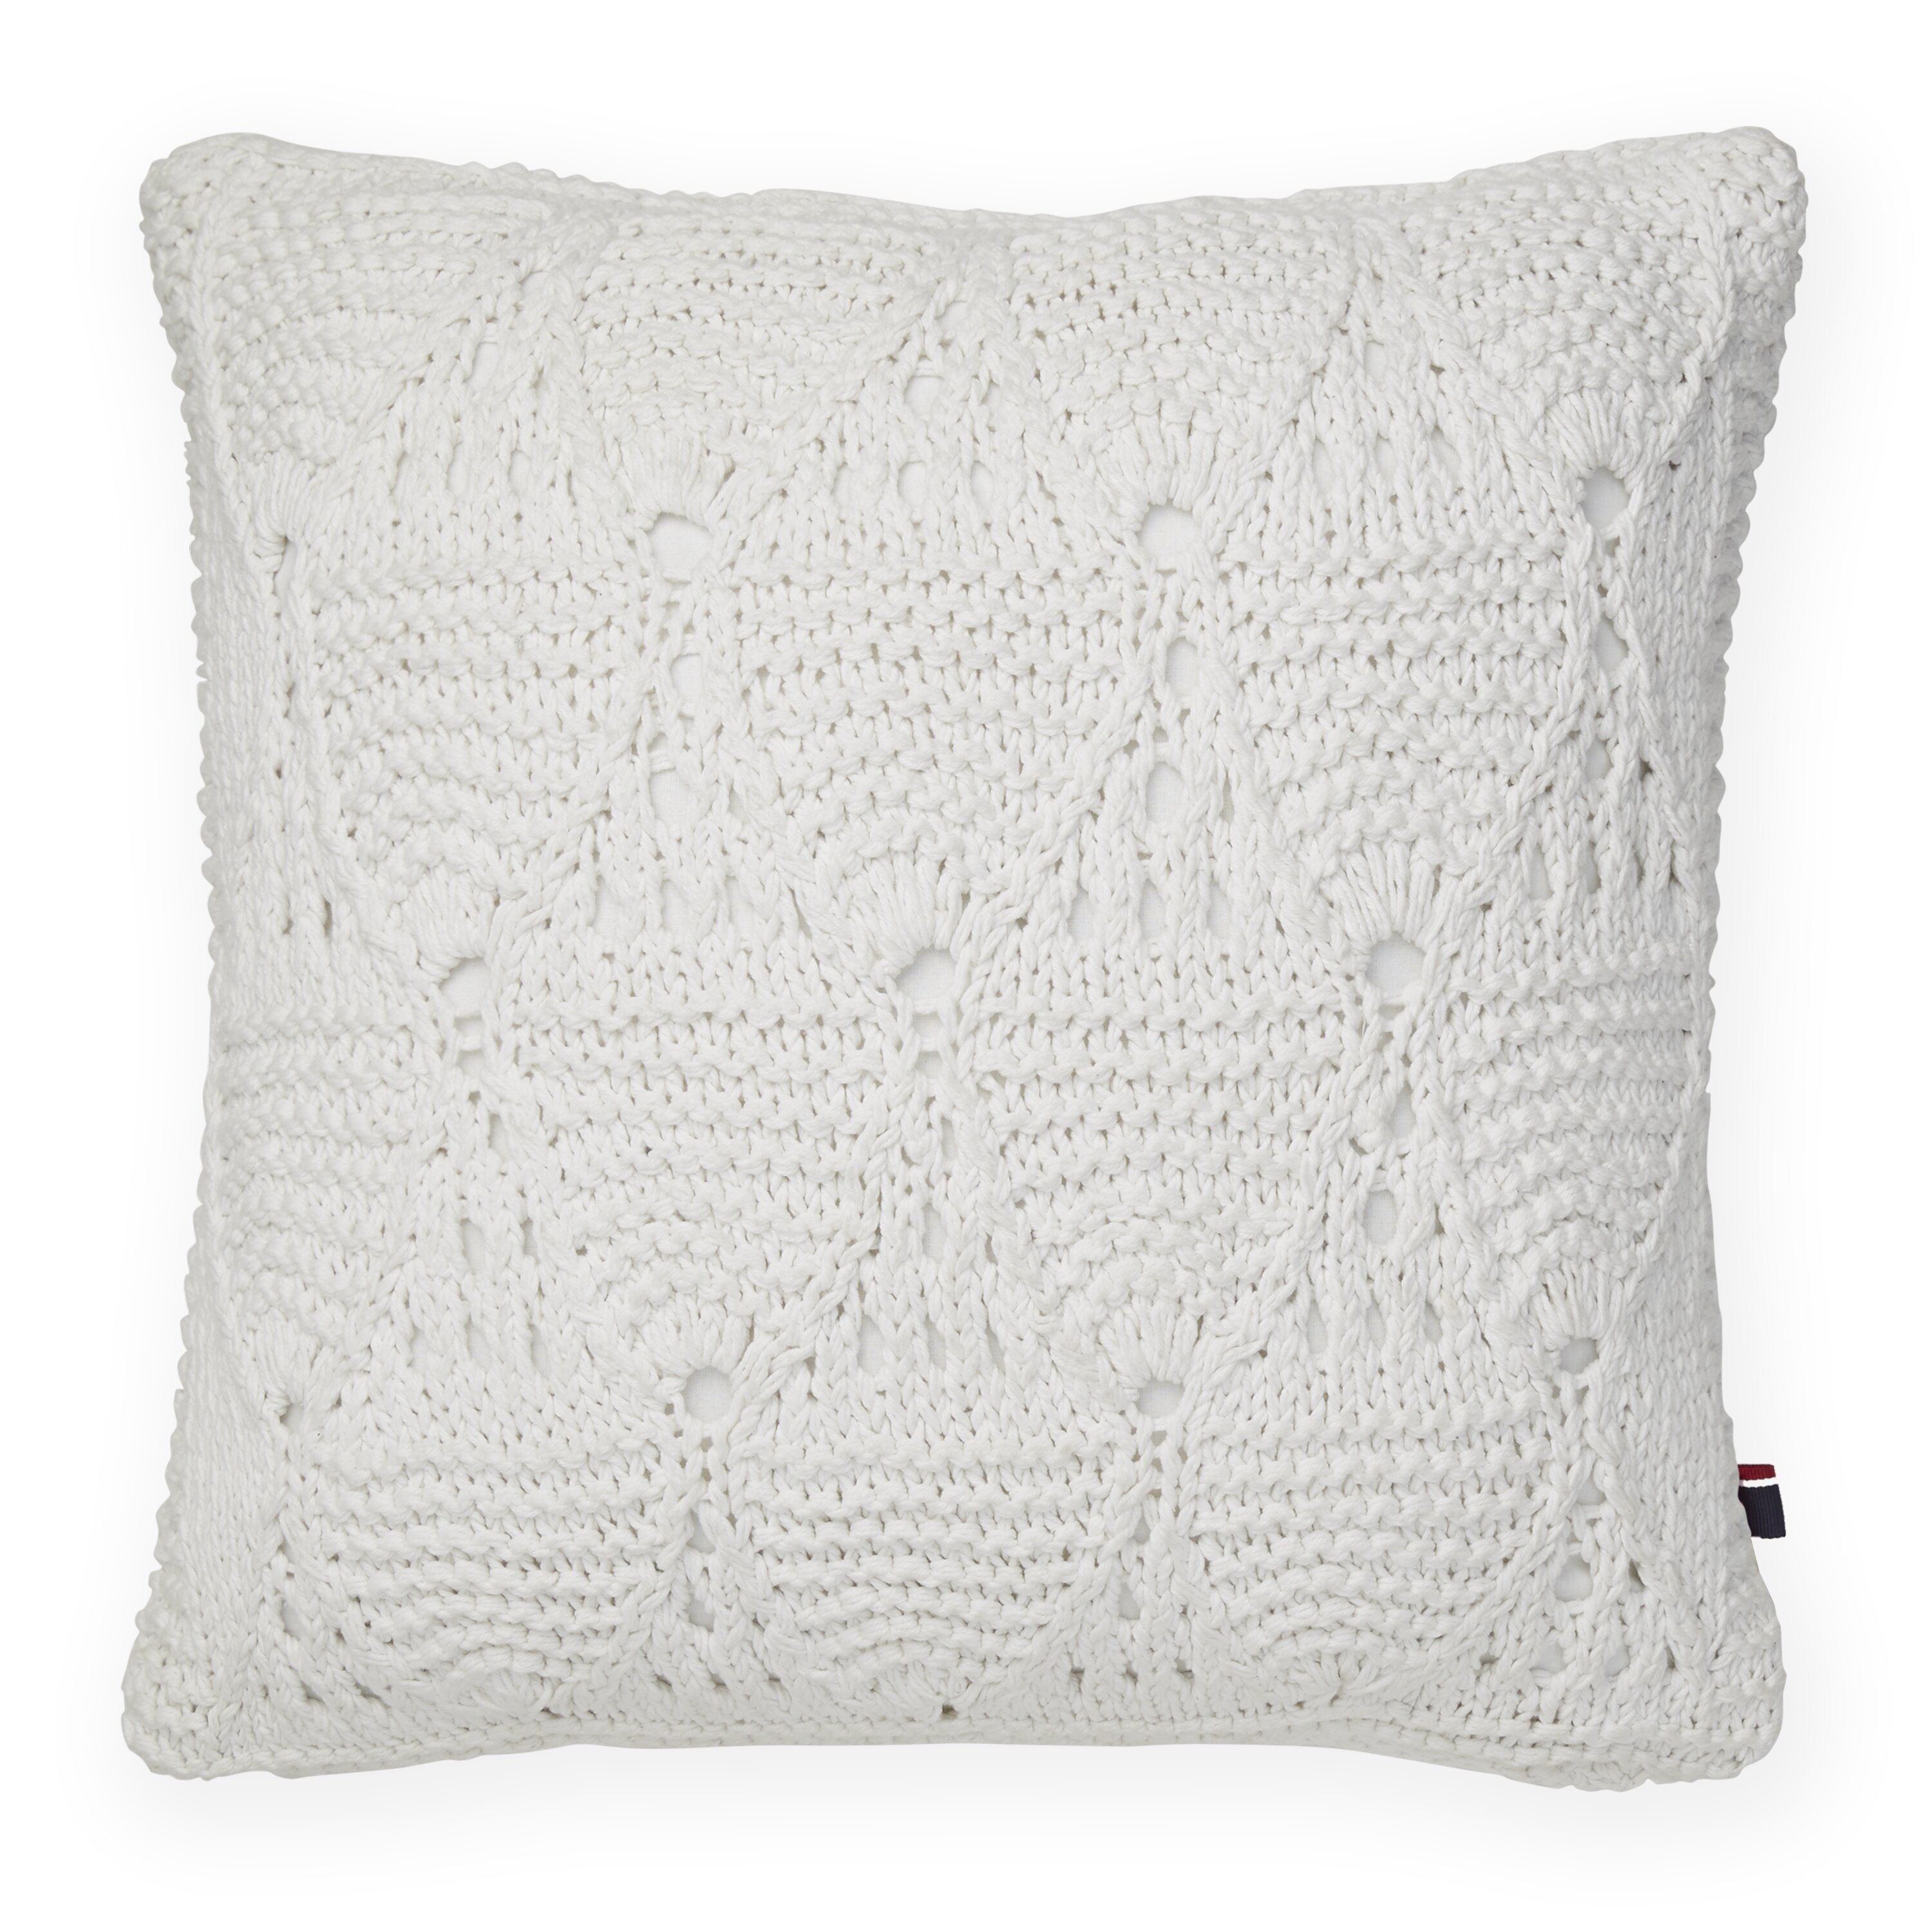 Tommy Hilfiger Decorative Bed Pillows : Tommy Hilfiger Bar Harbour Decorative Cotton Throw Pillow & Reviews Wayfair.ca